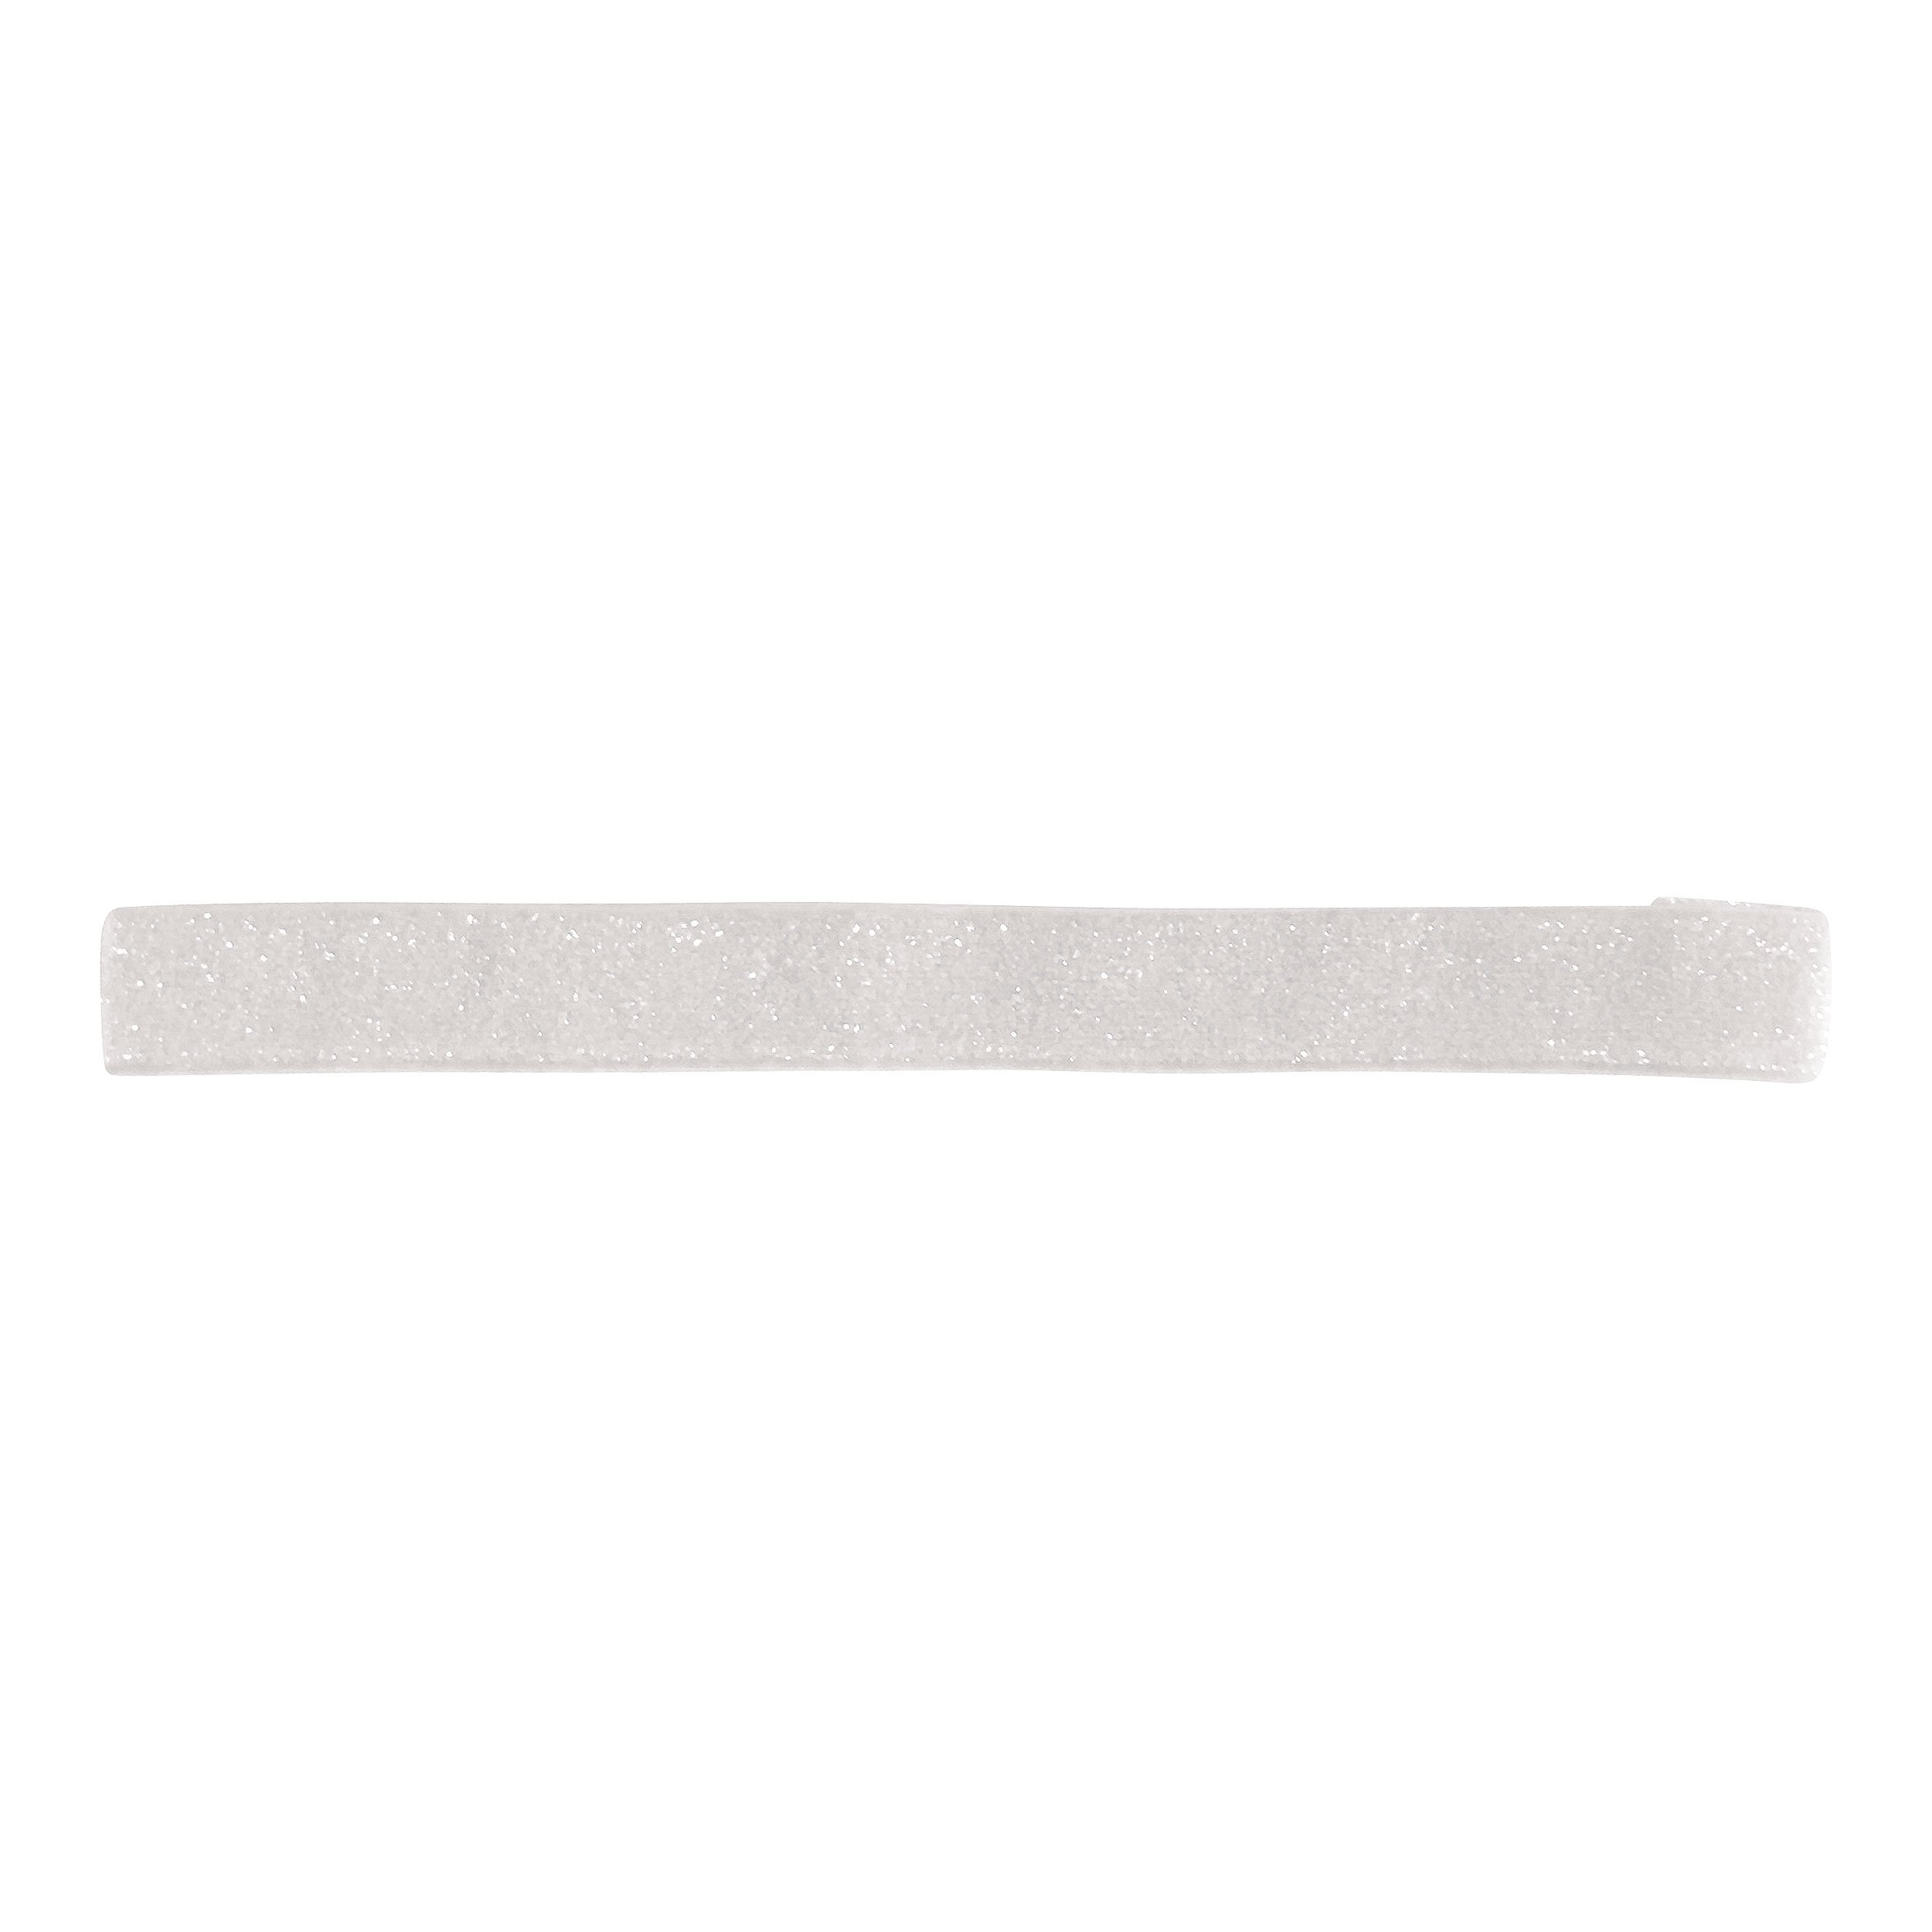 Image of Milledeux - Elastic hairband - white colored glitter